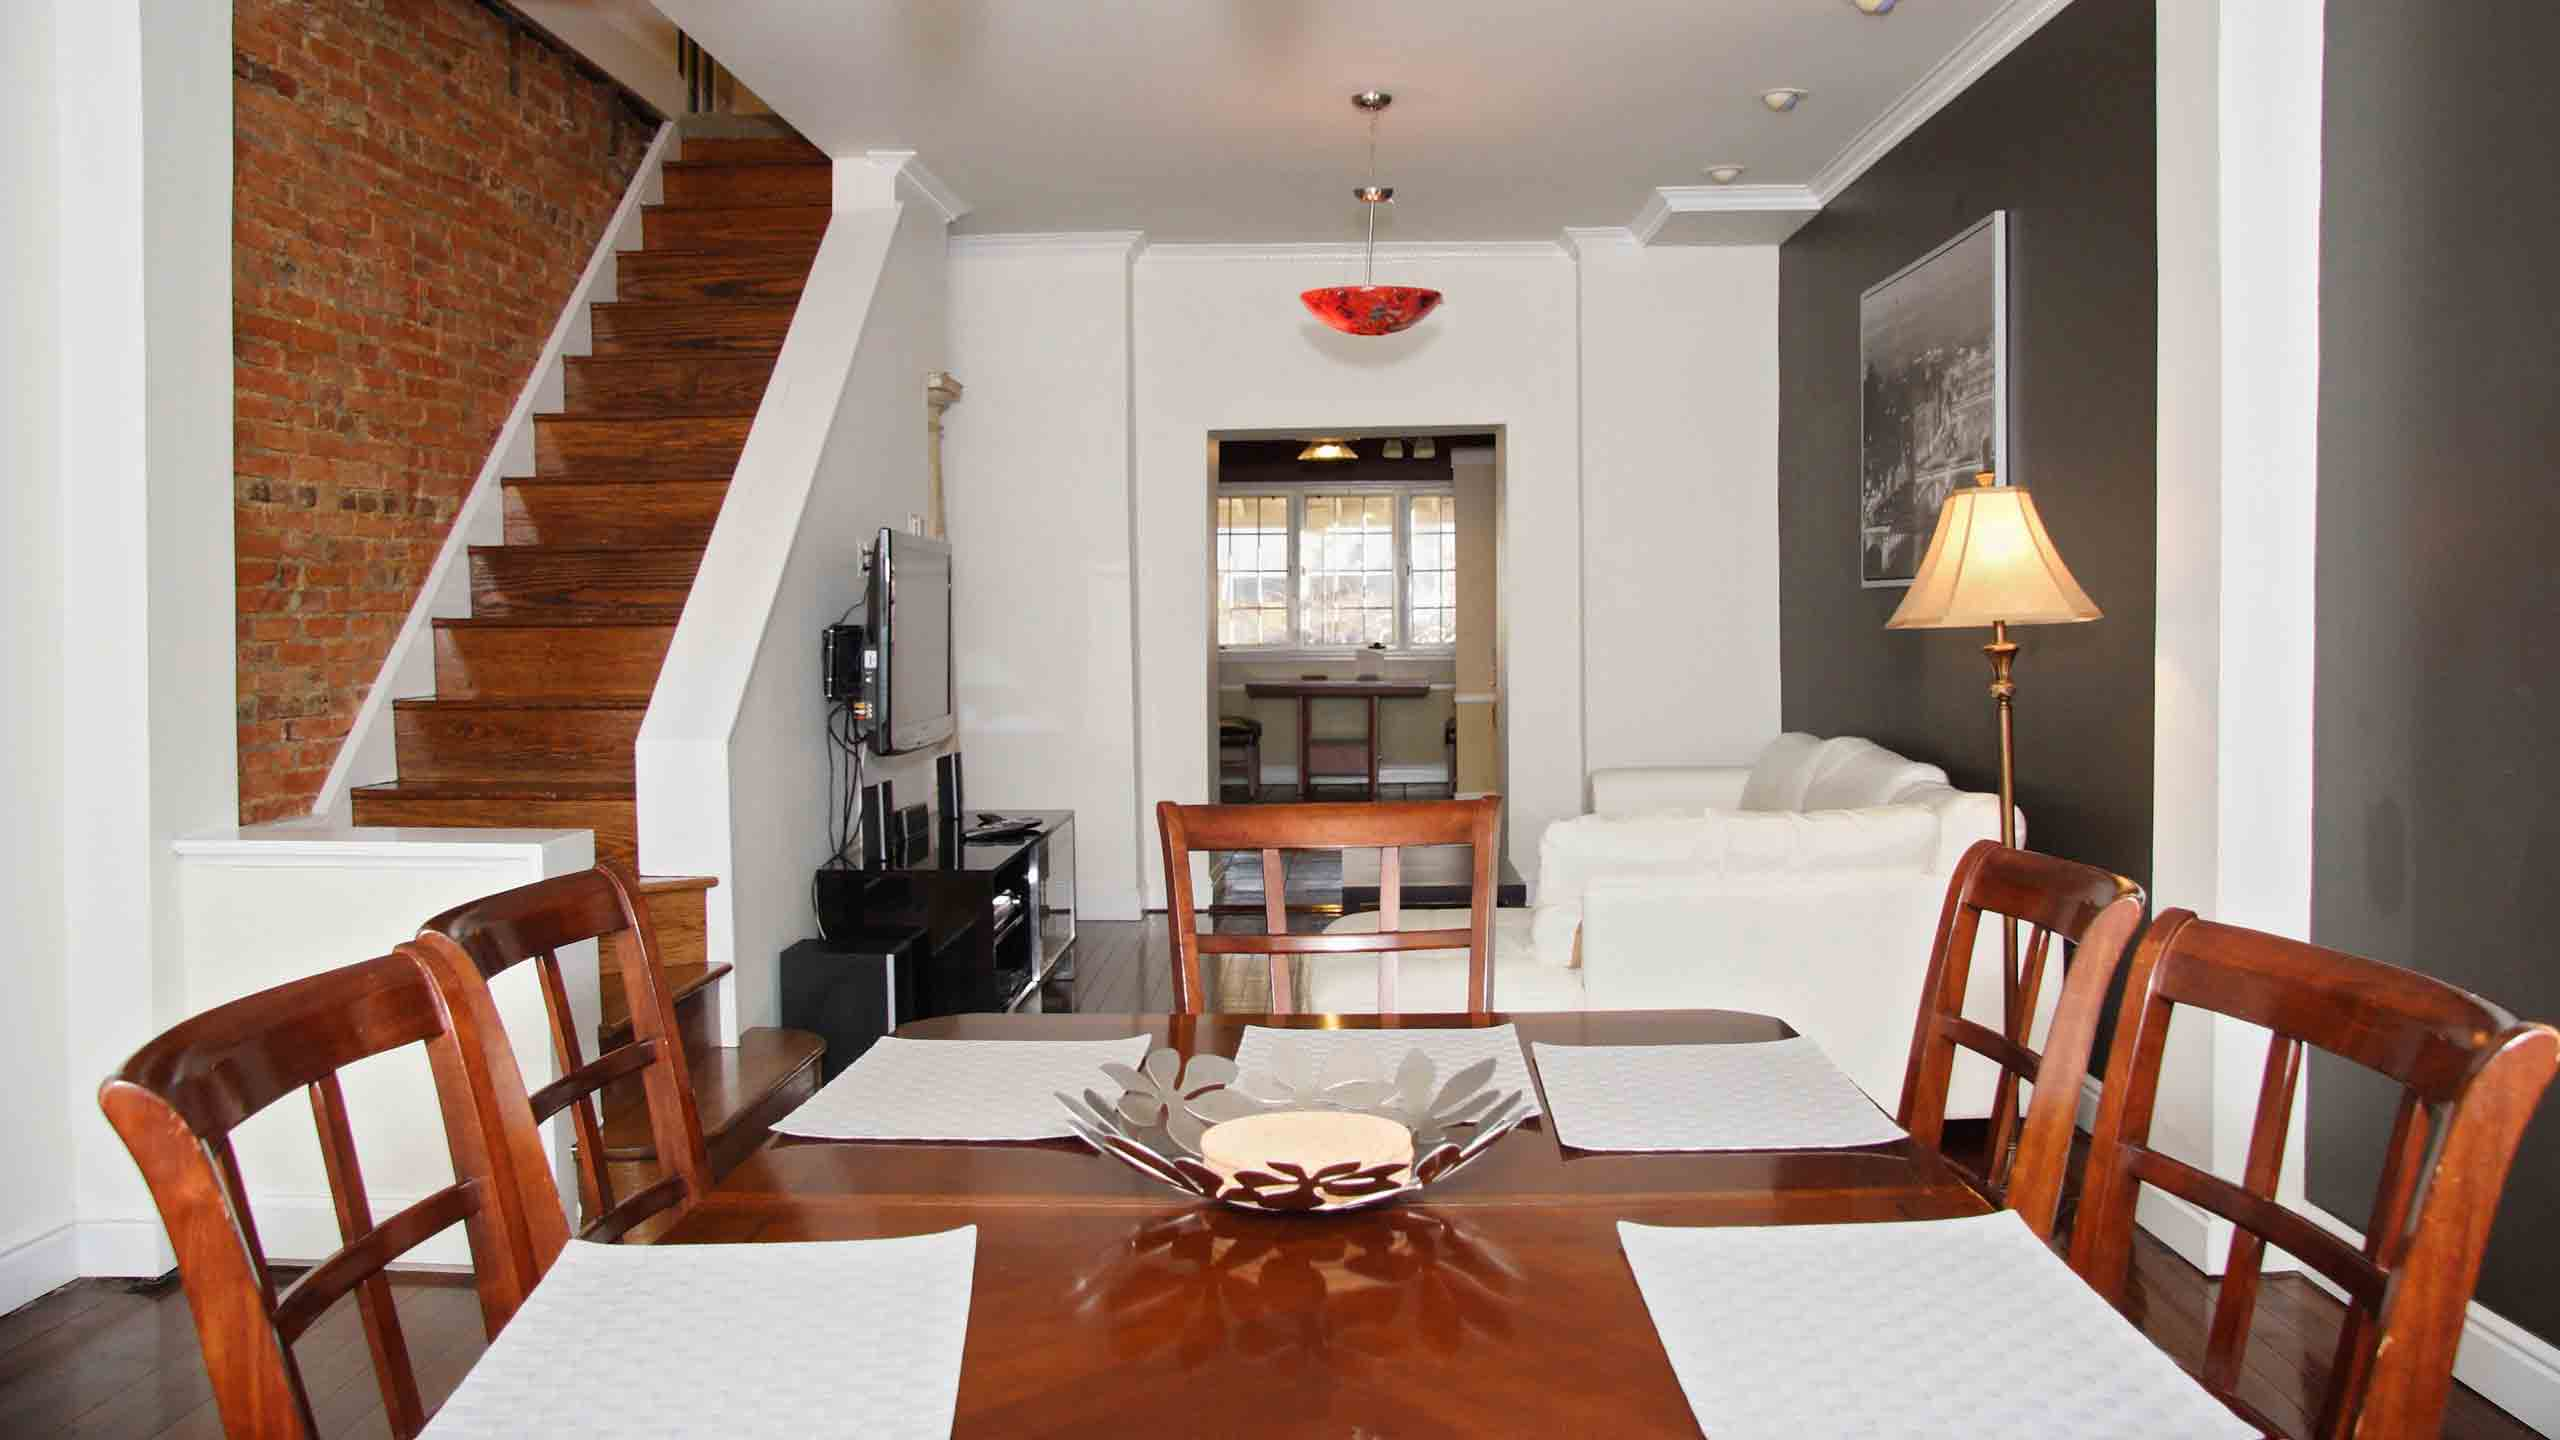 ,Find Houses And Apartments For Rent  ,websites to find houses and apartments for rent  ,trulia rentals - find homes and apartments for rent  ,best websites to find apartments and houses for rent  ,find a homes apartment for rent in princeton nj  ,Houses And Apartments For Rent  ,houses and apartments for rent near me  ,houses and apartments for rent in philadelphia  ,houses and apartments for rent in atlanta ga  ,houses and apartments for rent in columbia sc  ,houses and apartments for rent in stockton ca  ,houses and apartments for rent in barbados  ,houses and apartments for rent in wickliffe ohio  ,houses and apartments for rent in charlotte nc  ,houses and apartments for rent in jacksonville fl  ,houses and apartments for rent in toledo ohio  ,houses and apartments for rent in union mo  ,houses and apartments for rent in canton ohio  ,houses and apartments for rent in luray va  ,houses and apartments for rent in richmond va  ,houses and apartments for rent in albany ga  ,houses and apartments for rent in memphis tn  ,houses and apartments for rent in zanesville ohio  ,houses and apartments for rent pet friendly  ,houses and apartments for rent in san diego  ,houses and apartments for rent in new orleans  ,houses and apartments for rent around me  ,houses and apartments for rent alexandria la  ,houses and apartments for rent that accept section 8  ,houses and apartments for rent in akron ohio  ,houses and apartments for rent in augusta ga  ,houses and apartments for rent in asheville nc  ,houses and apartments for rent in arizona  ,houses and apartments for rent in allentown pa  ,houses and apartments for rent in austin tx  ,houses and apartments for rent jonesboro ar  ,houses and apartments for rent in athens ga  ,houses and apartments for rent los angeles  ,houses and apartments for rent in albuquerque  ,houses and apartments for rent in el dorado arkansas  ,houses and apartments for rent in lugbe abuja  ,houses and apartments for rent in my area  ,houses and apartments for rent in phoenix az  ,houses and apartments for rent in brinkley arkansas  ,houses and apartments for rent boone nc  ,houses and apartments for rent by private owners  ,houses and apartments for rent by owner  ,houses and apartments for rent bunclody  ,houses and apartments for rent brisbane  ,houses and apartments for rent bowling green ky  ,houses and apartments for rent baton rouge  ,houses and apartments for rent beaumont  ,houses and apartments for rent buffalo ny  ,houses and flats for rent belhar  ,houses and flats for rent brackenfell  ,houses and apartments for rent near belpre ohio  ,houses and apartments for rent near boise state  ,houses and apartments for rent in bakersfield ca  ,houses and apartments for rent in bowdon georgia  ,houses and apartments for rent in bracebridge ontario